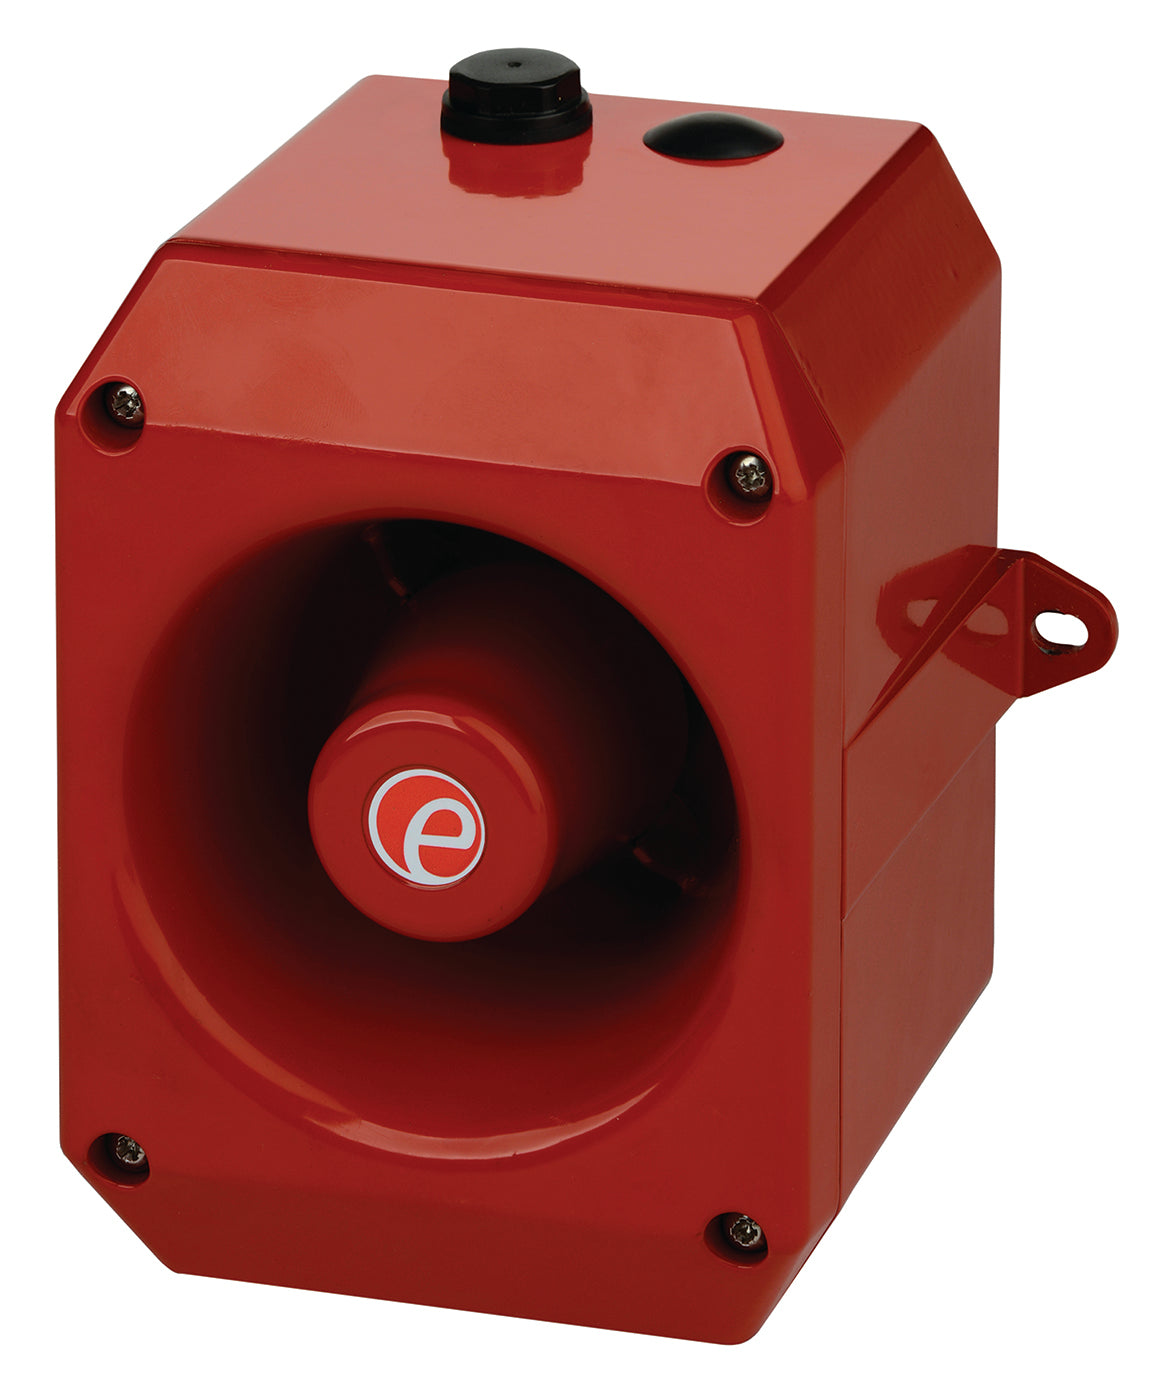 E2S D105 Robust IP66 Metal Sounder - BNR Industrial